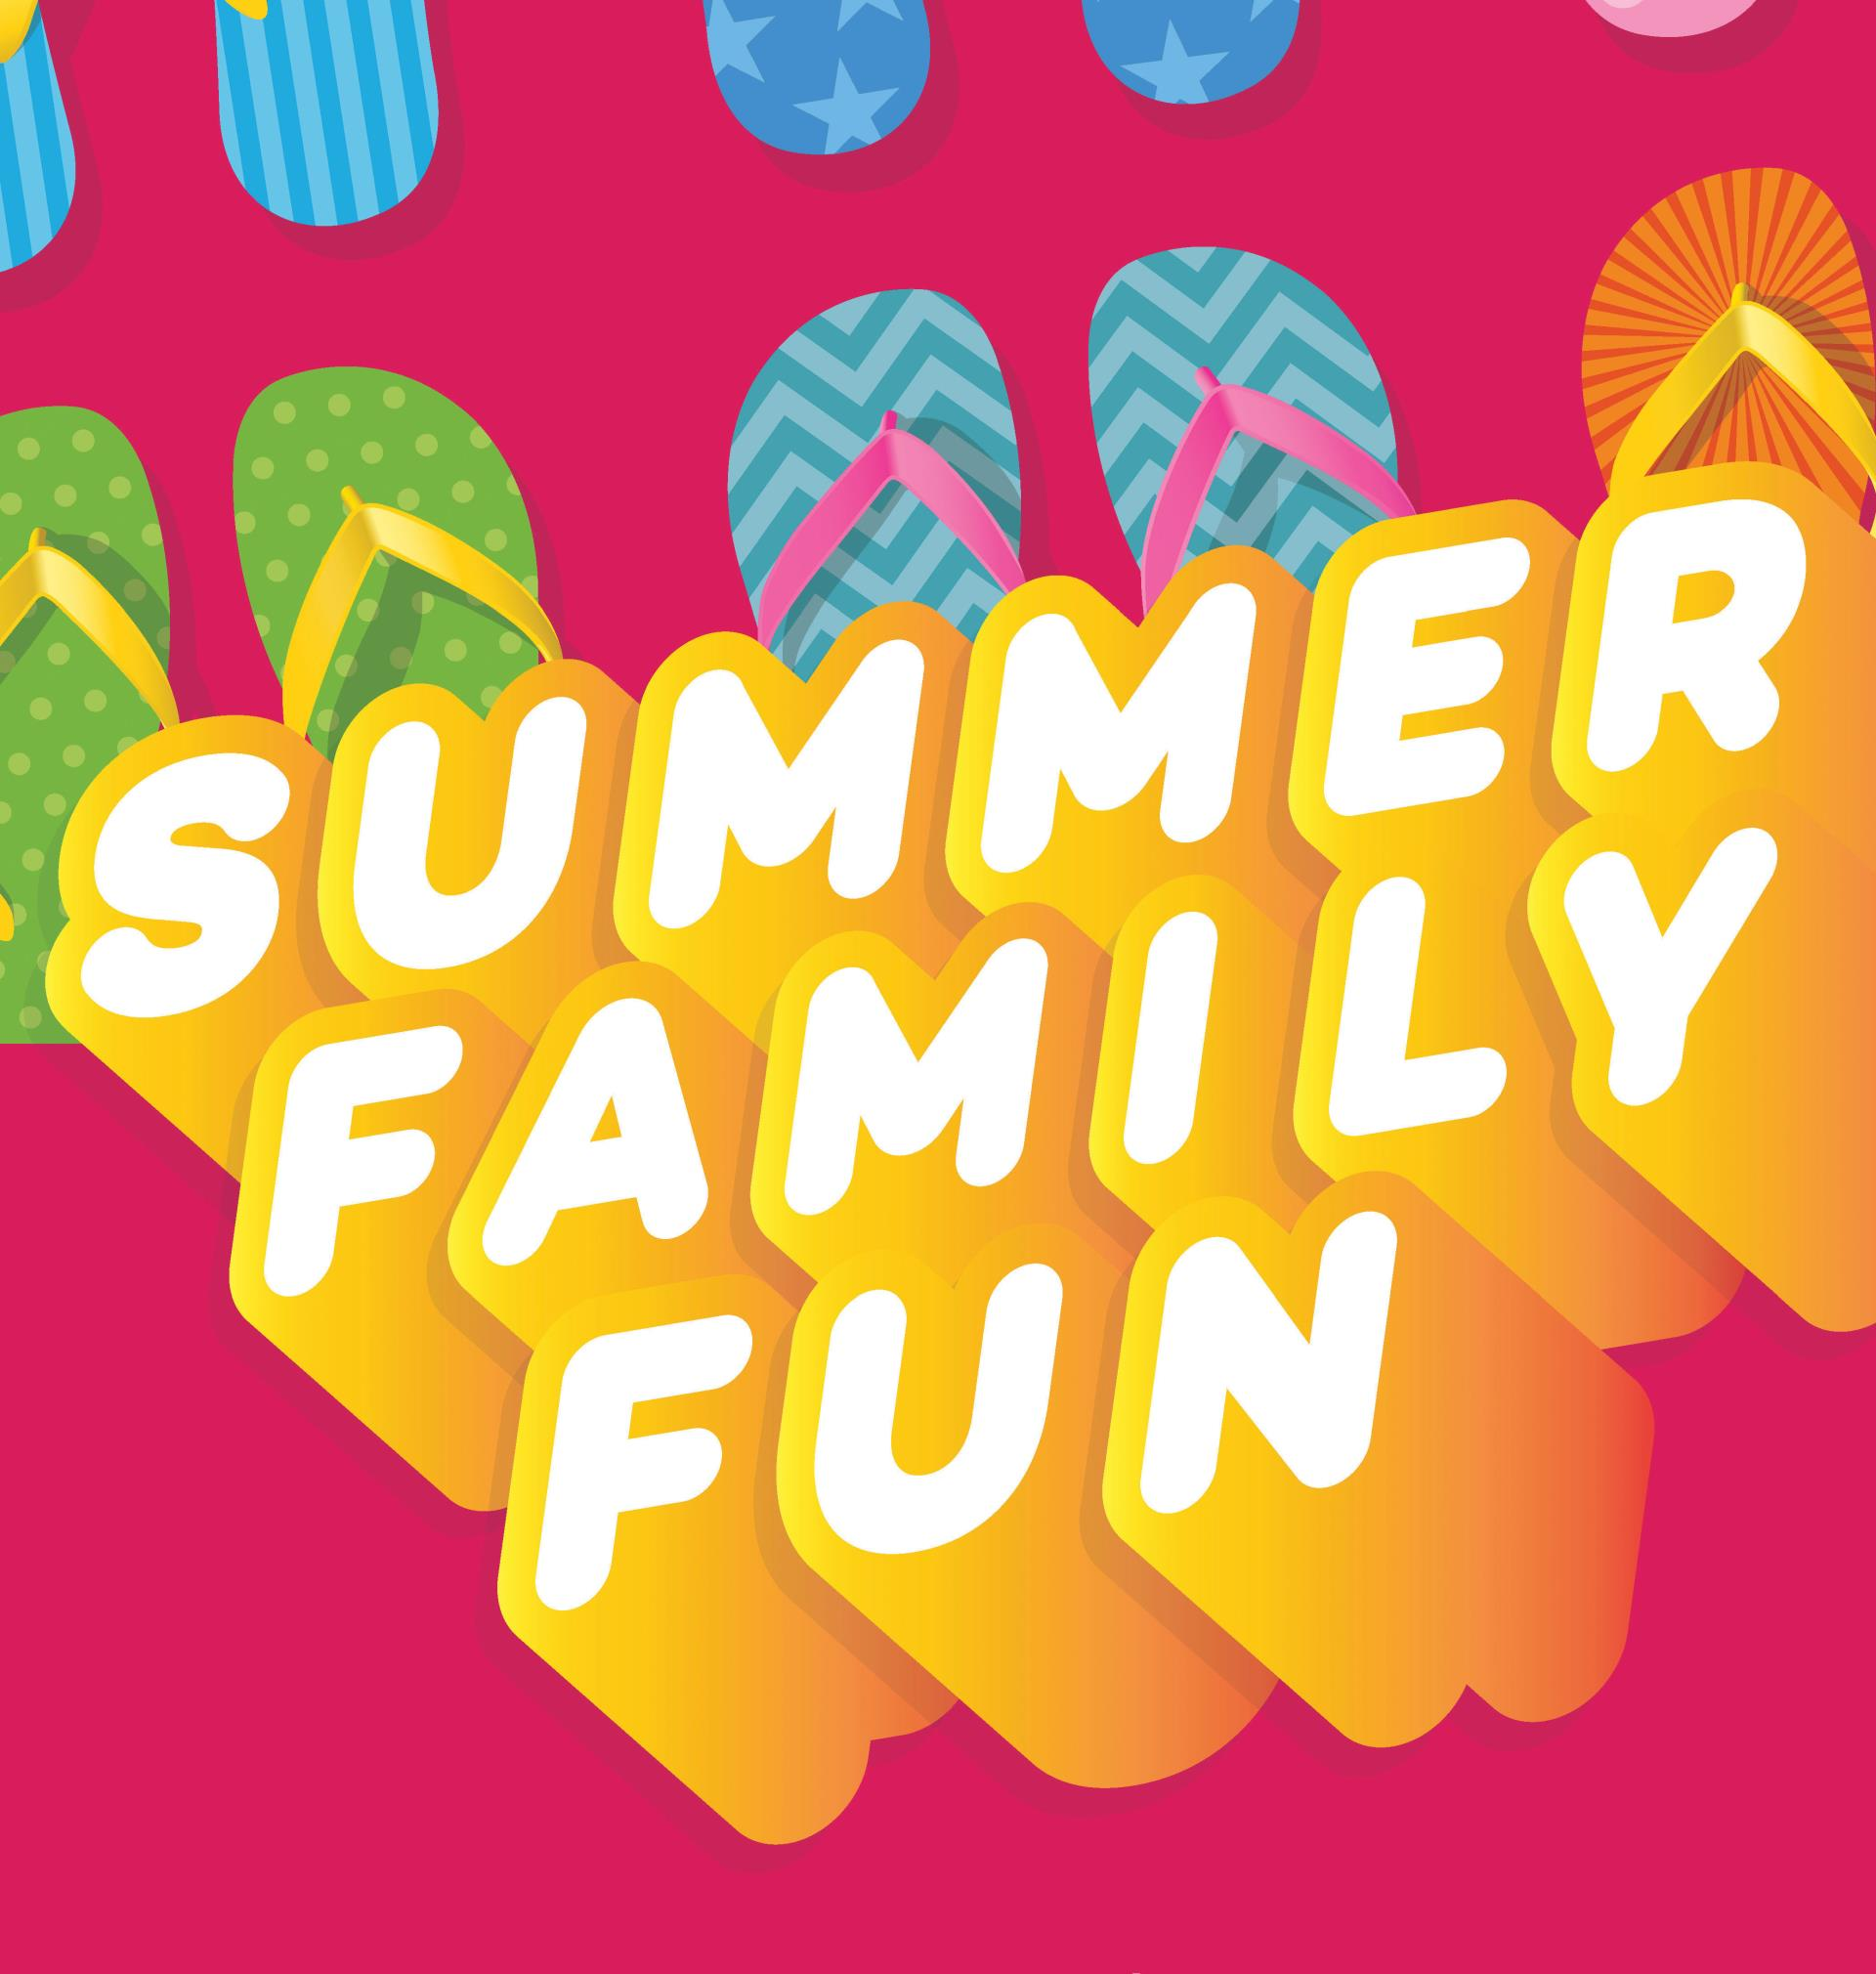 There are lots of free, family-friendly activities in Kent this summer.